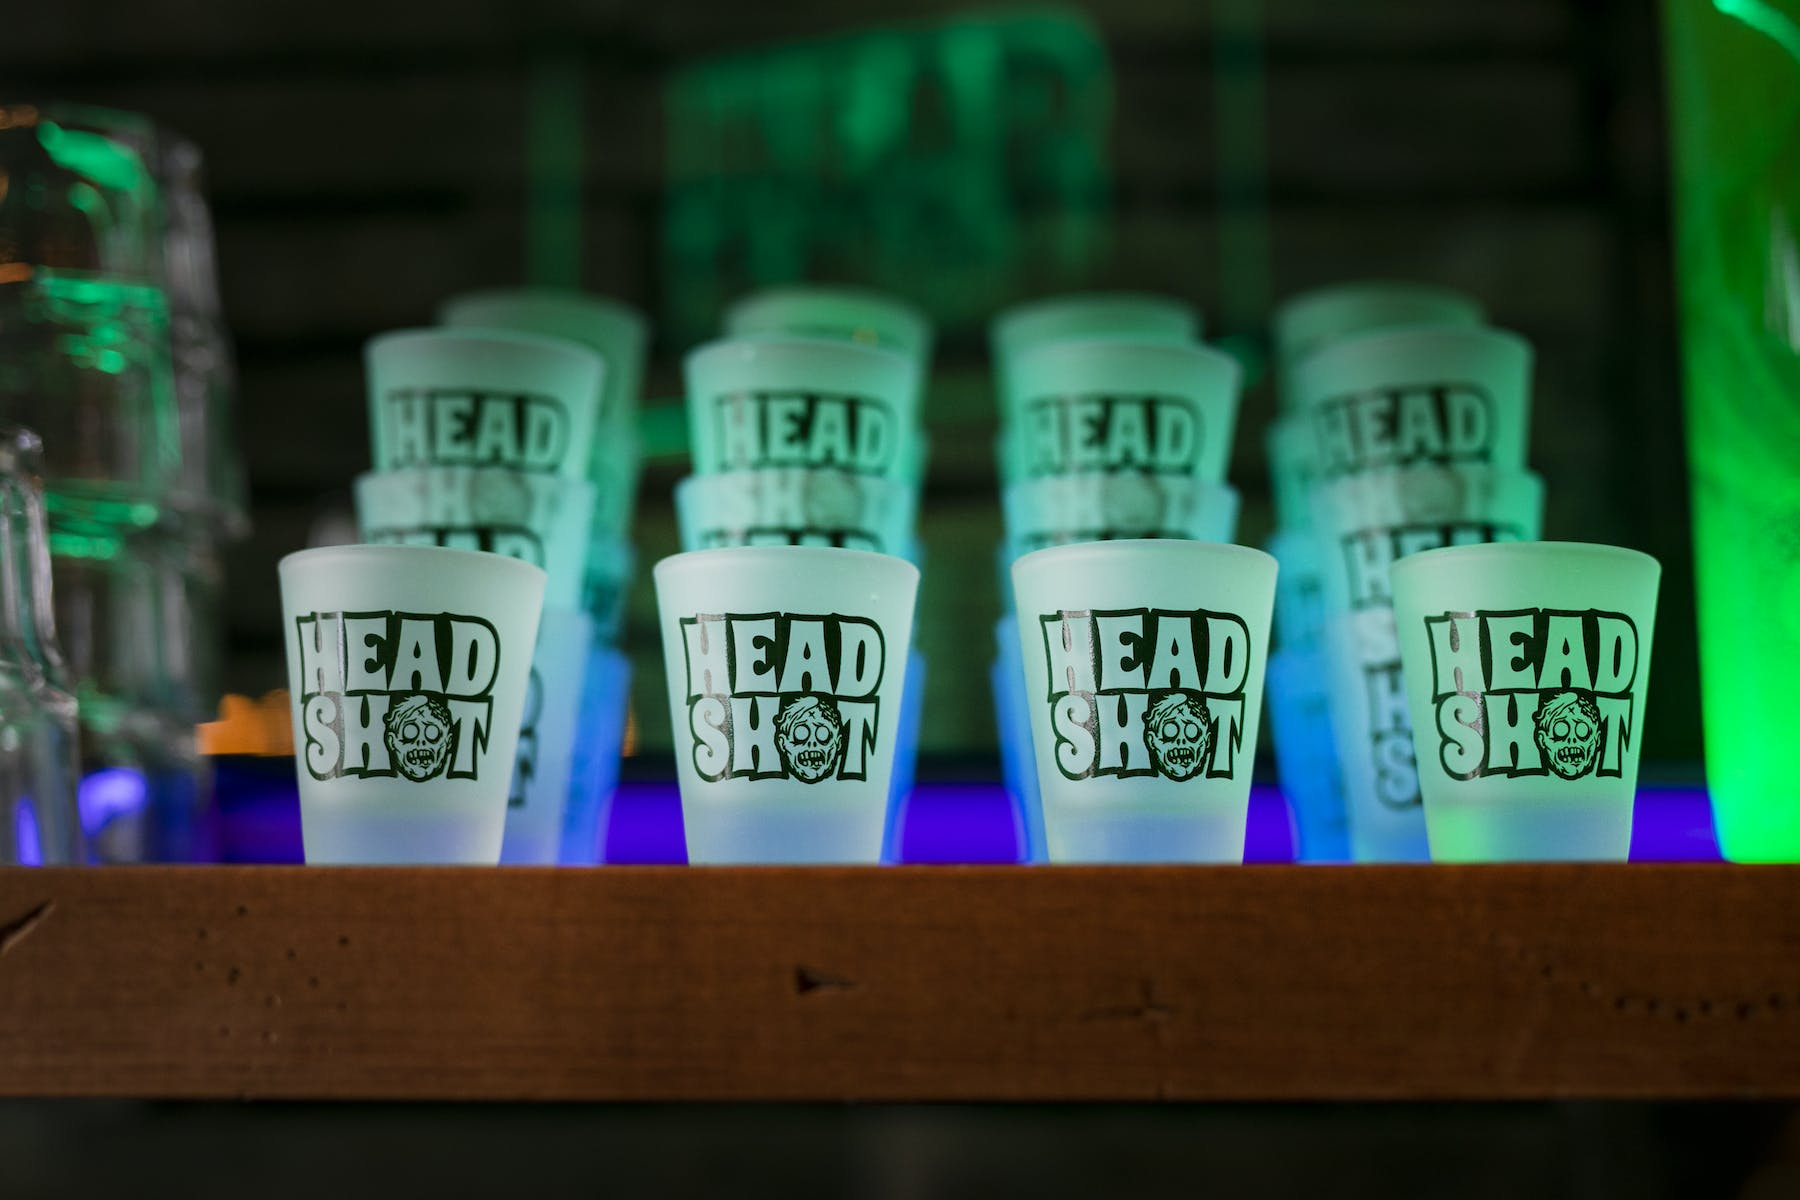 a close up of headshot shot glasses